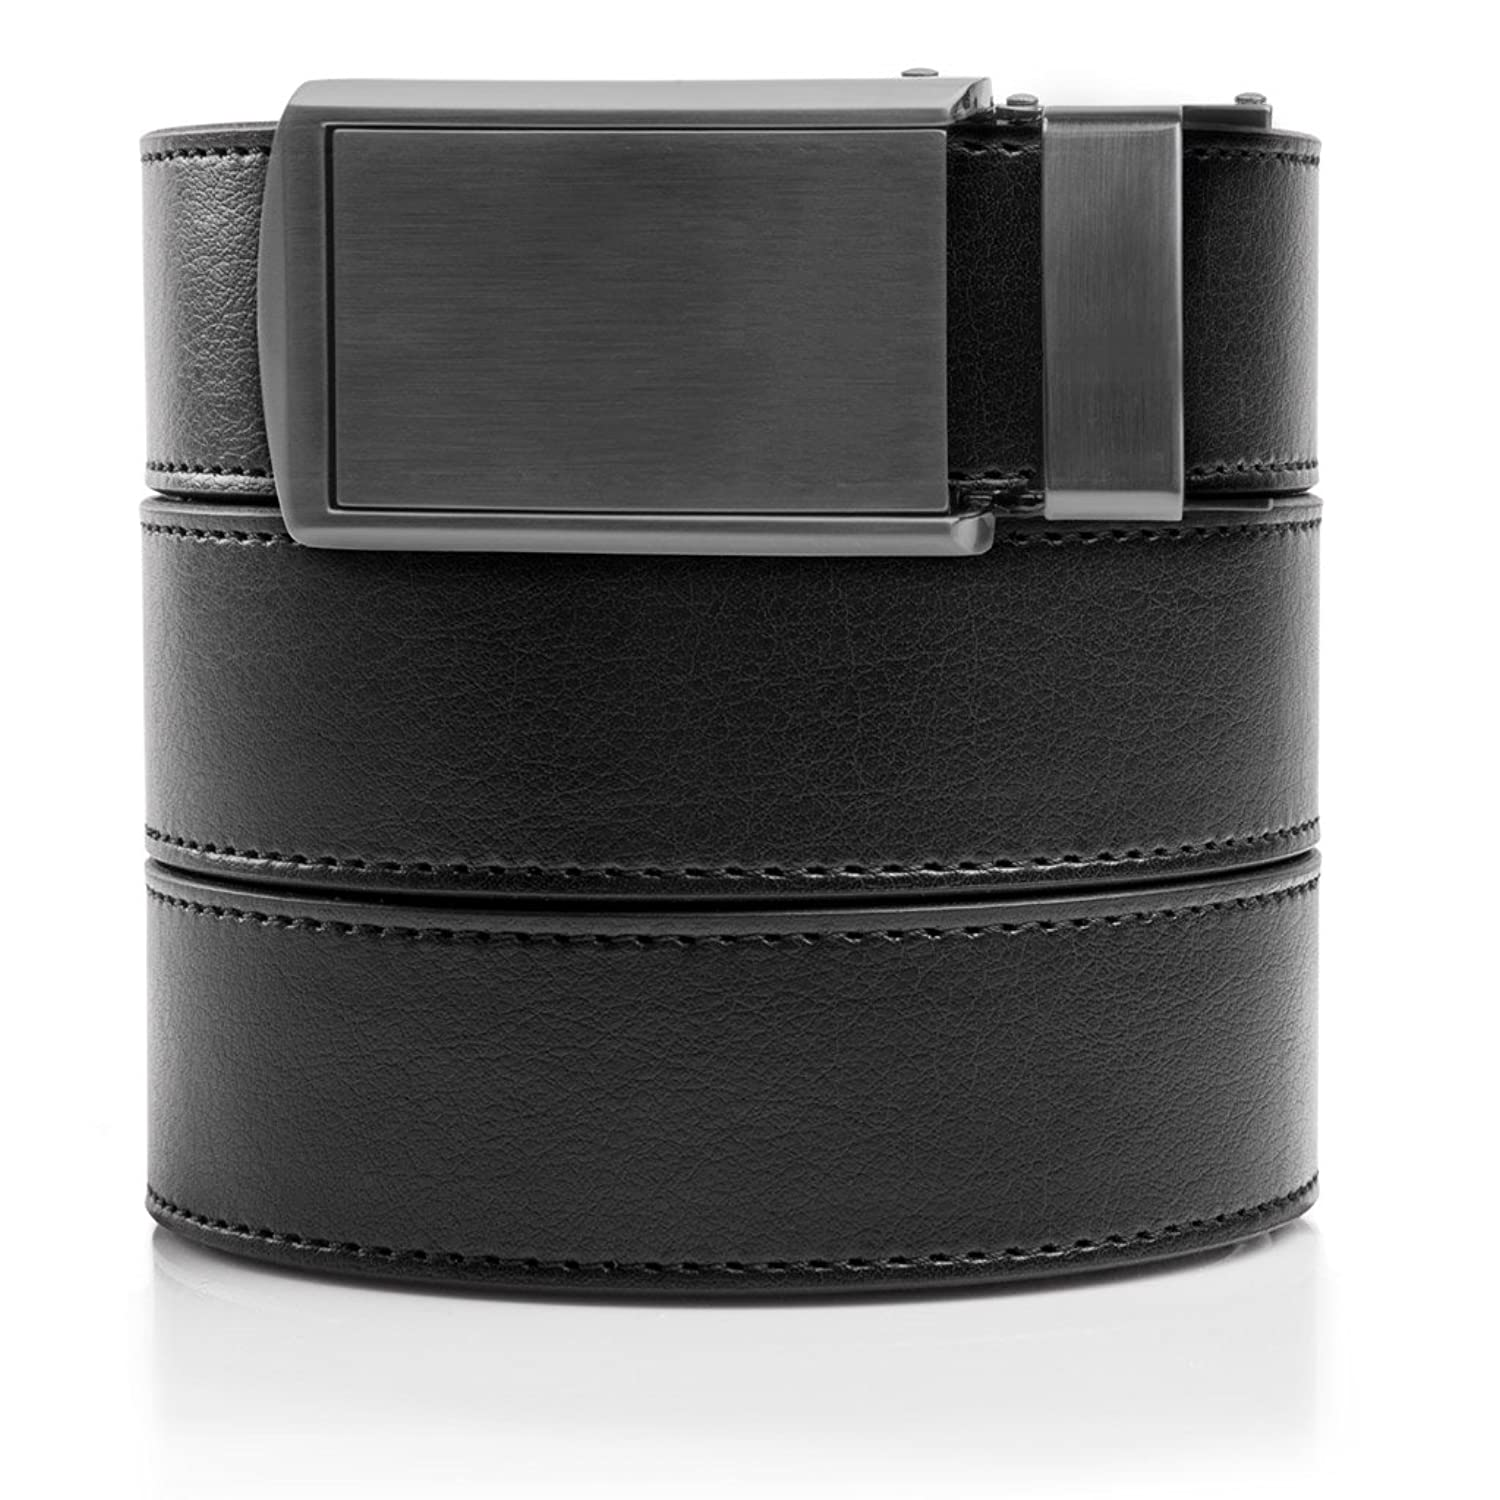 amazon com slidebelts men s animal friendly leather belt out amazon com slidebelts men s animal friendly leather belt out holes gunmetal buckle black leather trim to fit up to 48 waist arts